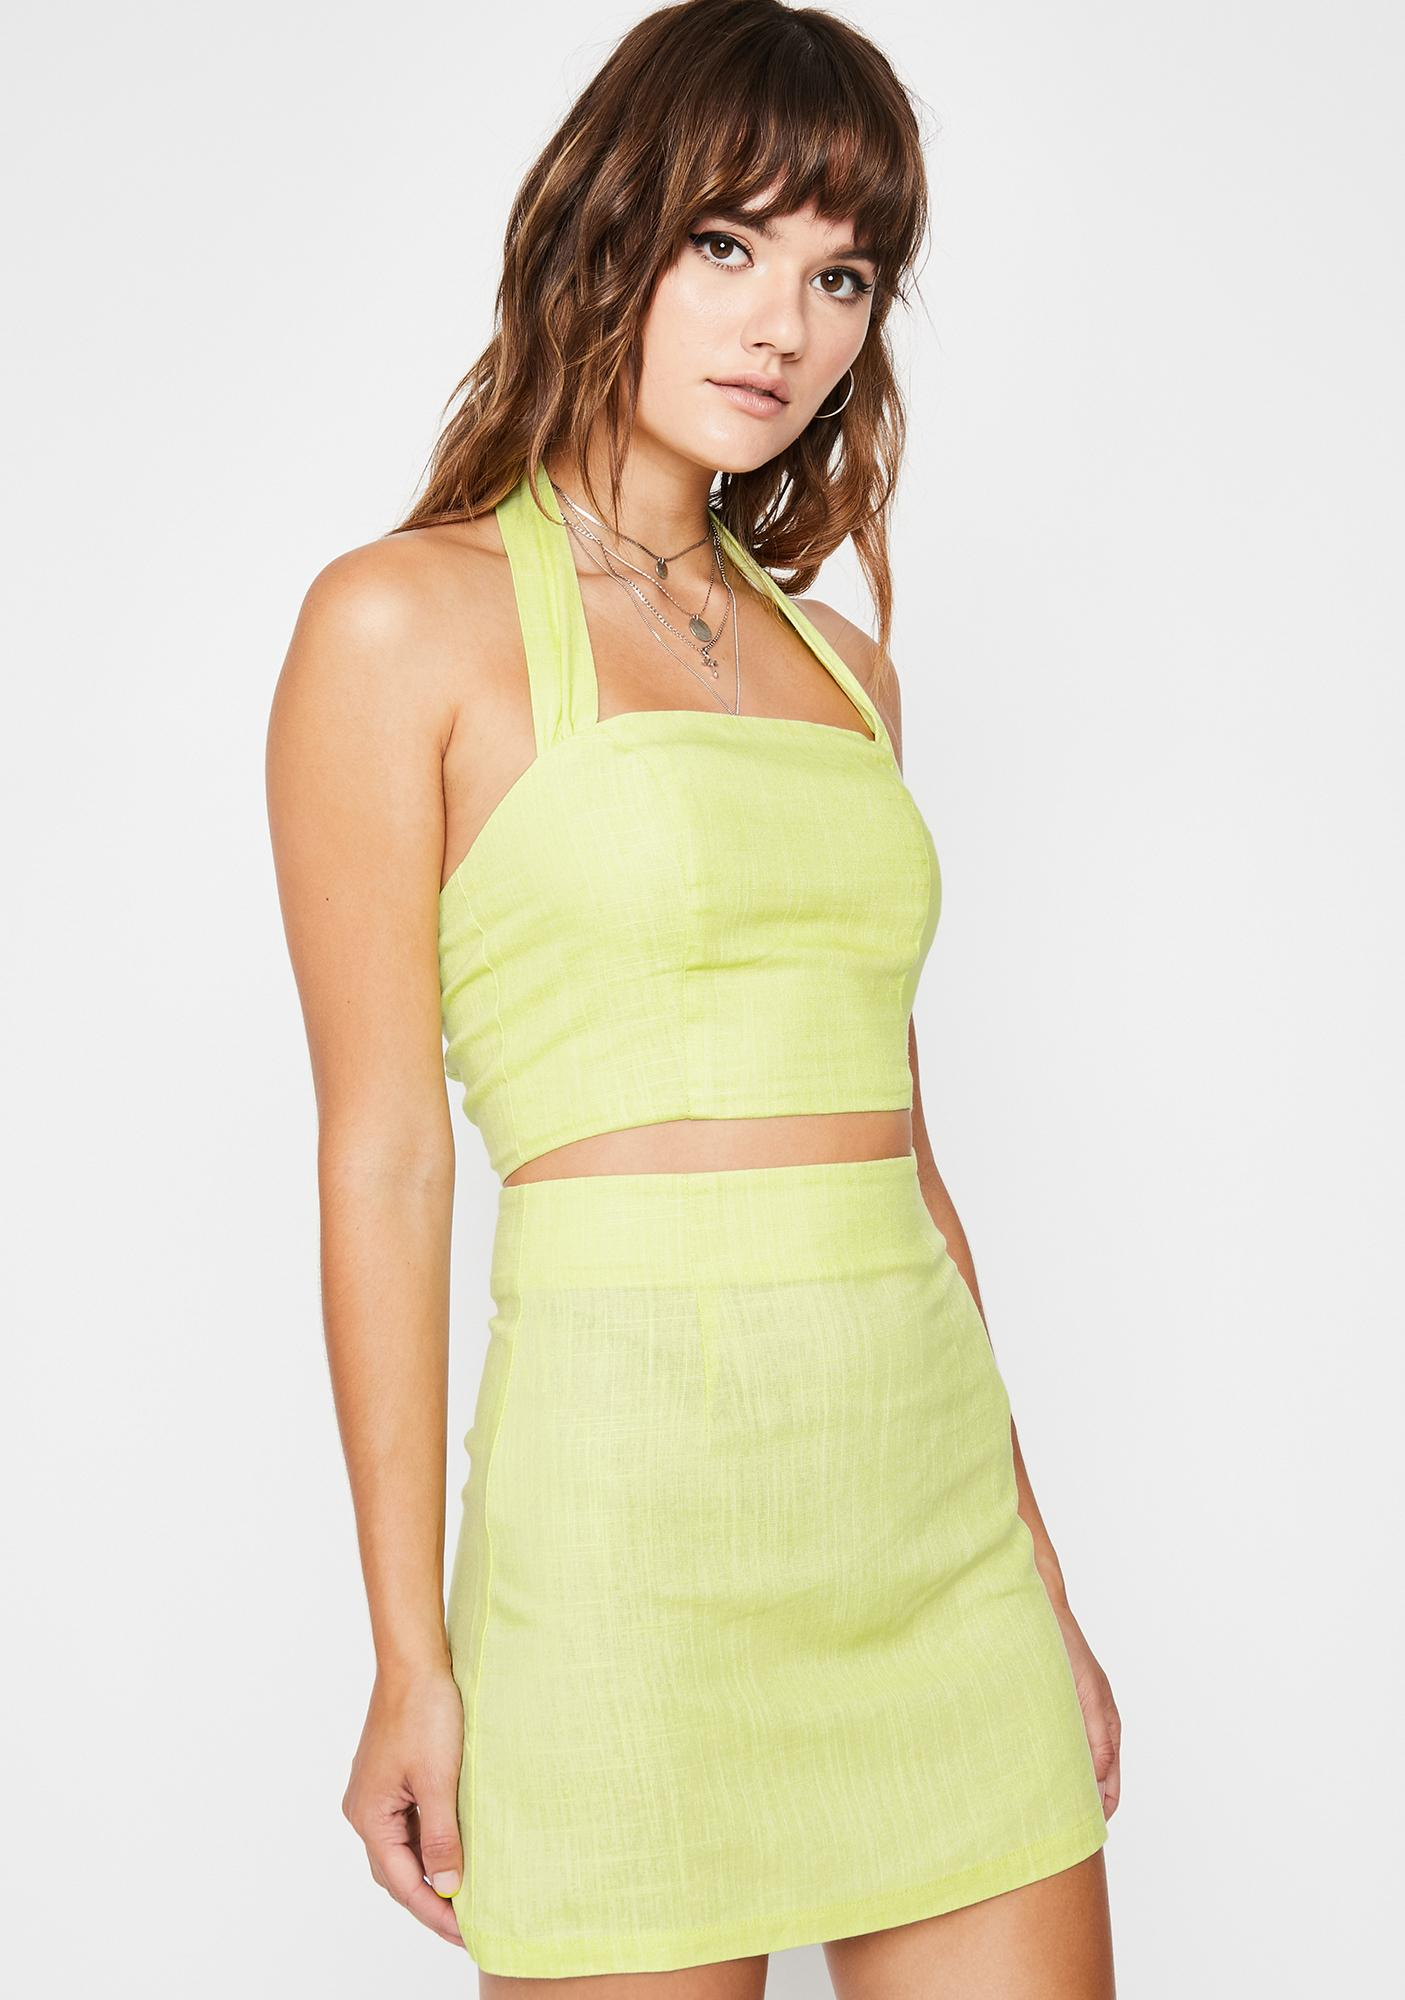 Cute Times Two Skirt Set